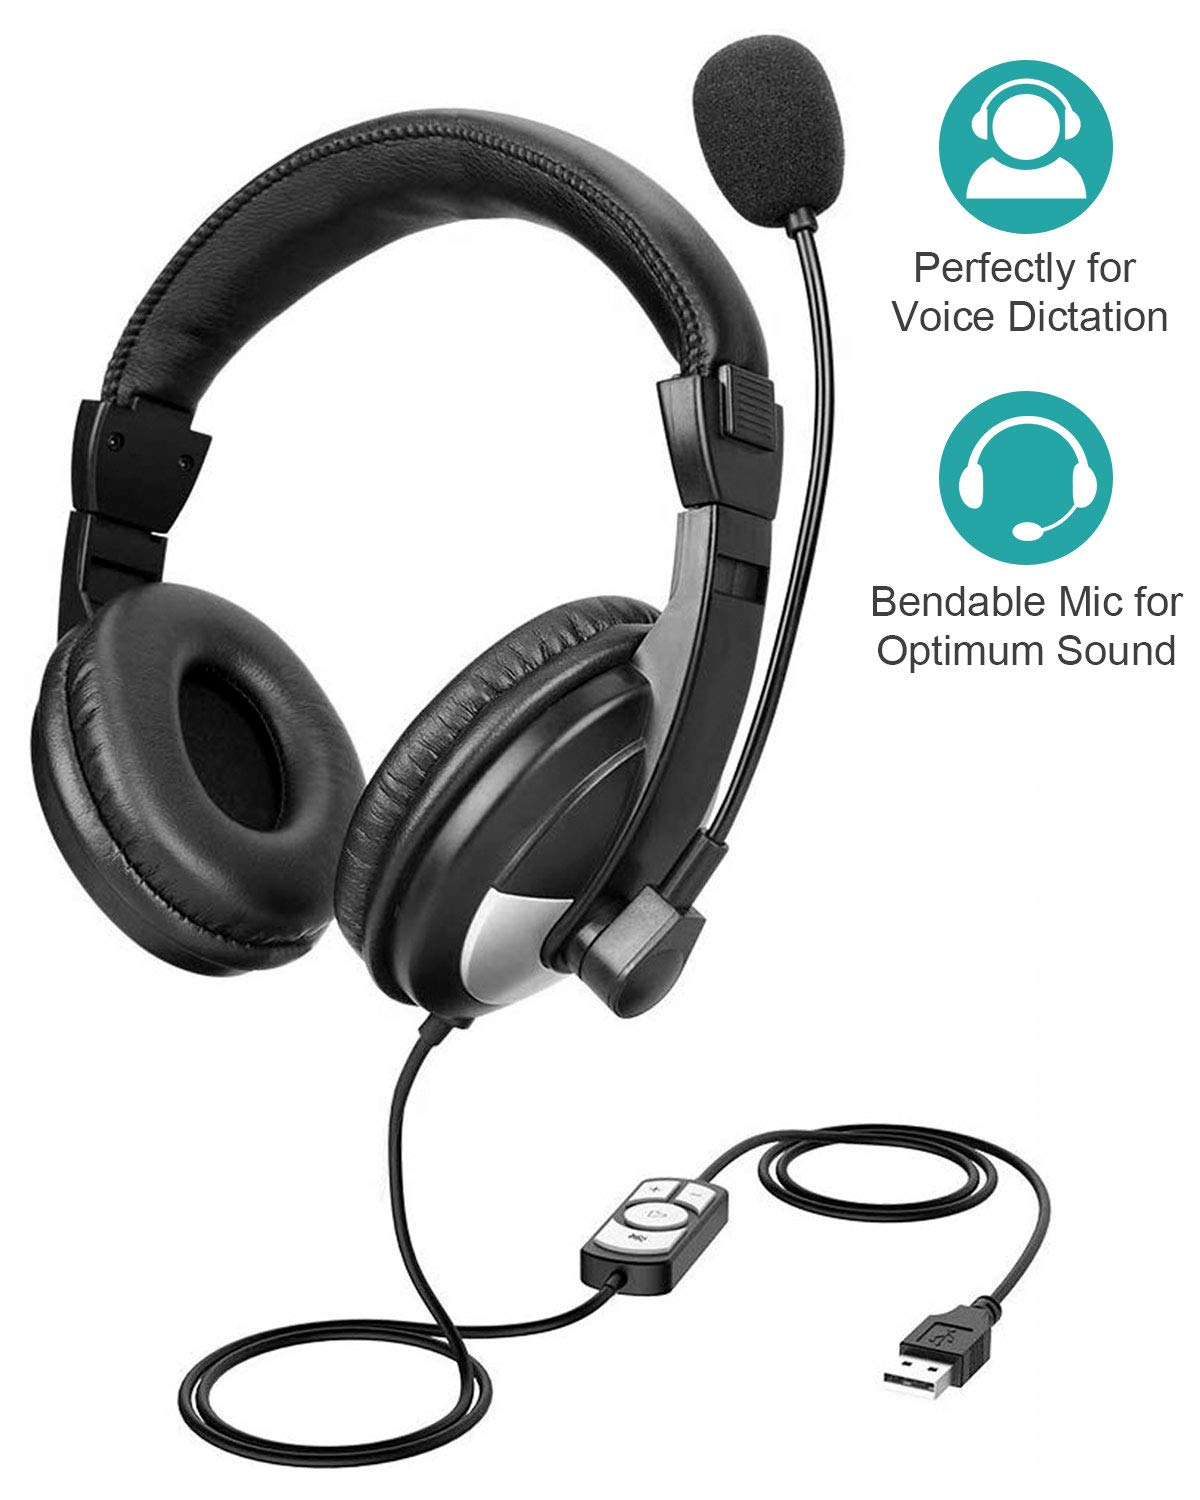 GIARIDE Headset USB Earphone with Noise-Cancelling Microphone Widely Use for Call Center, Shopping Mall, Game Room, Media Room, Skype,PC etc, Sound Clear and Wearing Comfortable, Hearing Protection